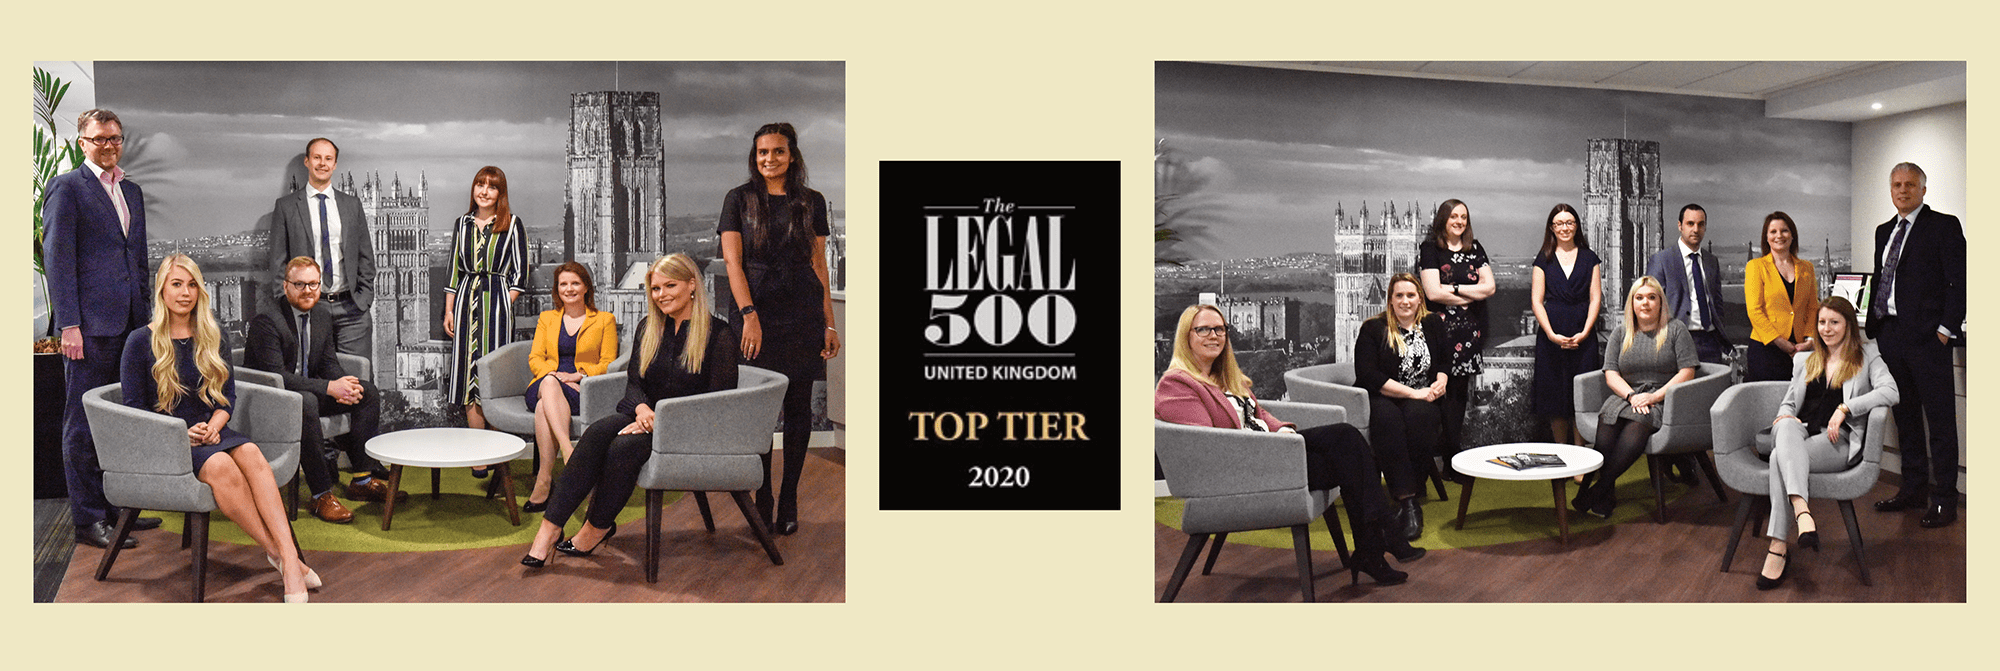 Legal 500 Award Team Photo